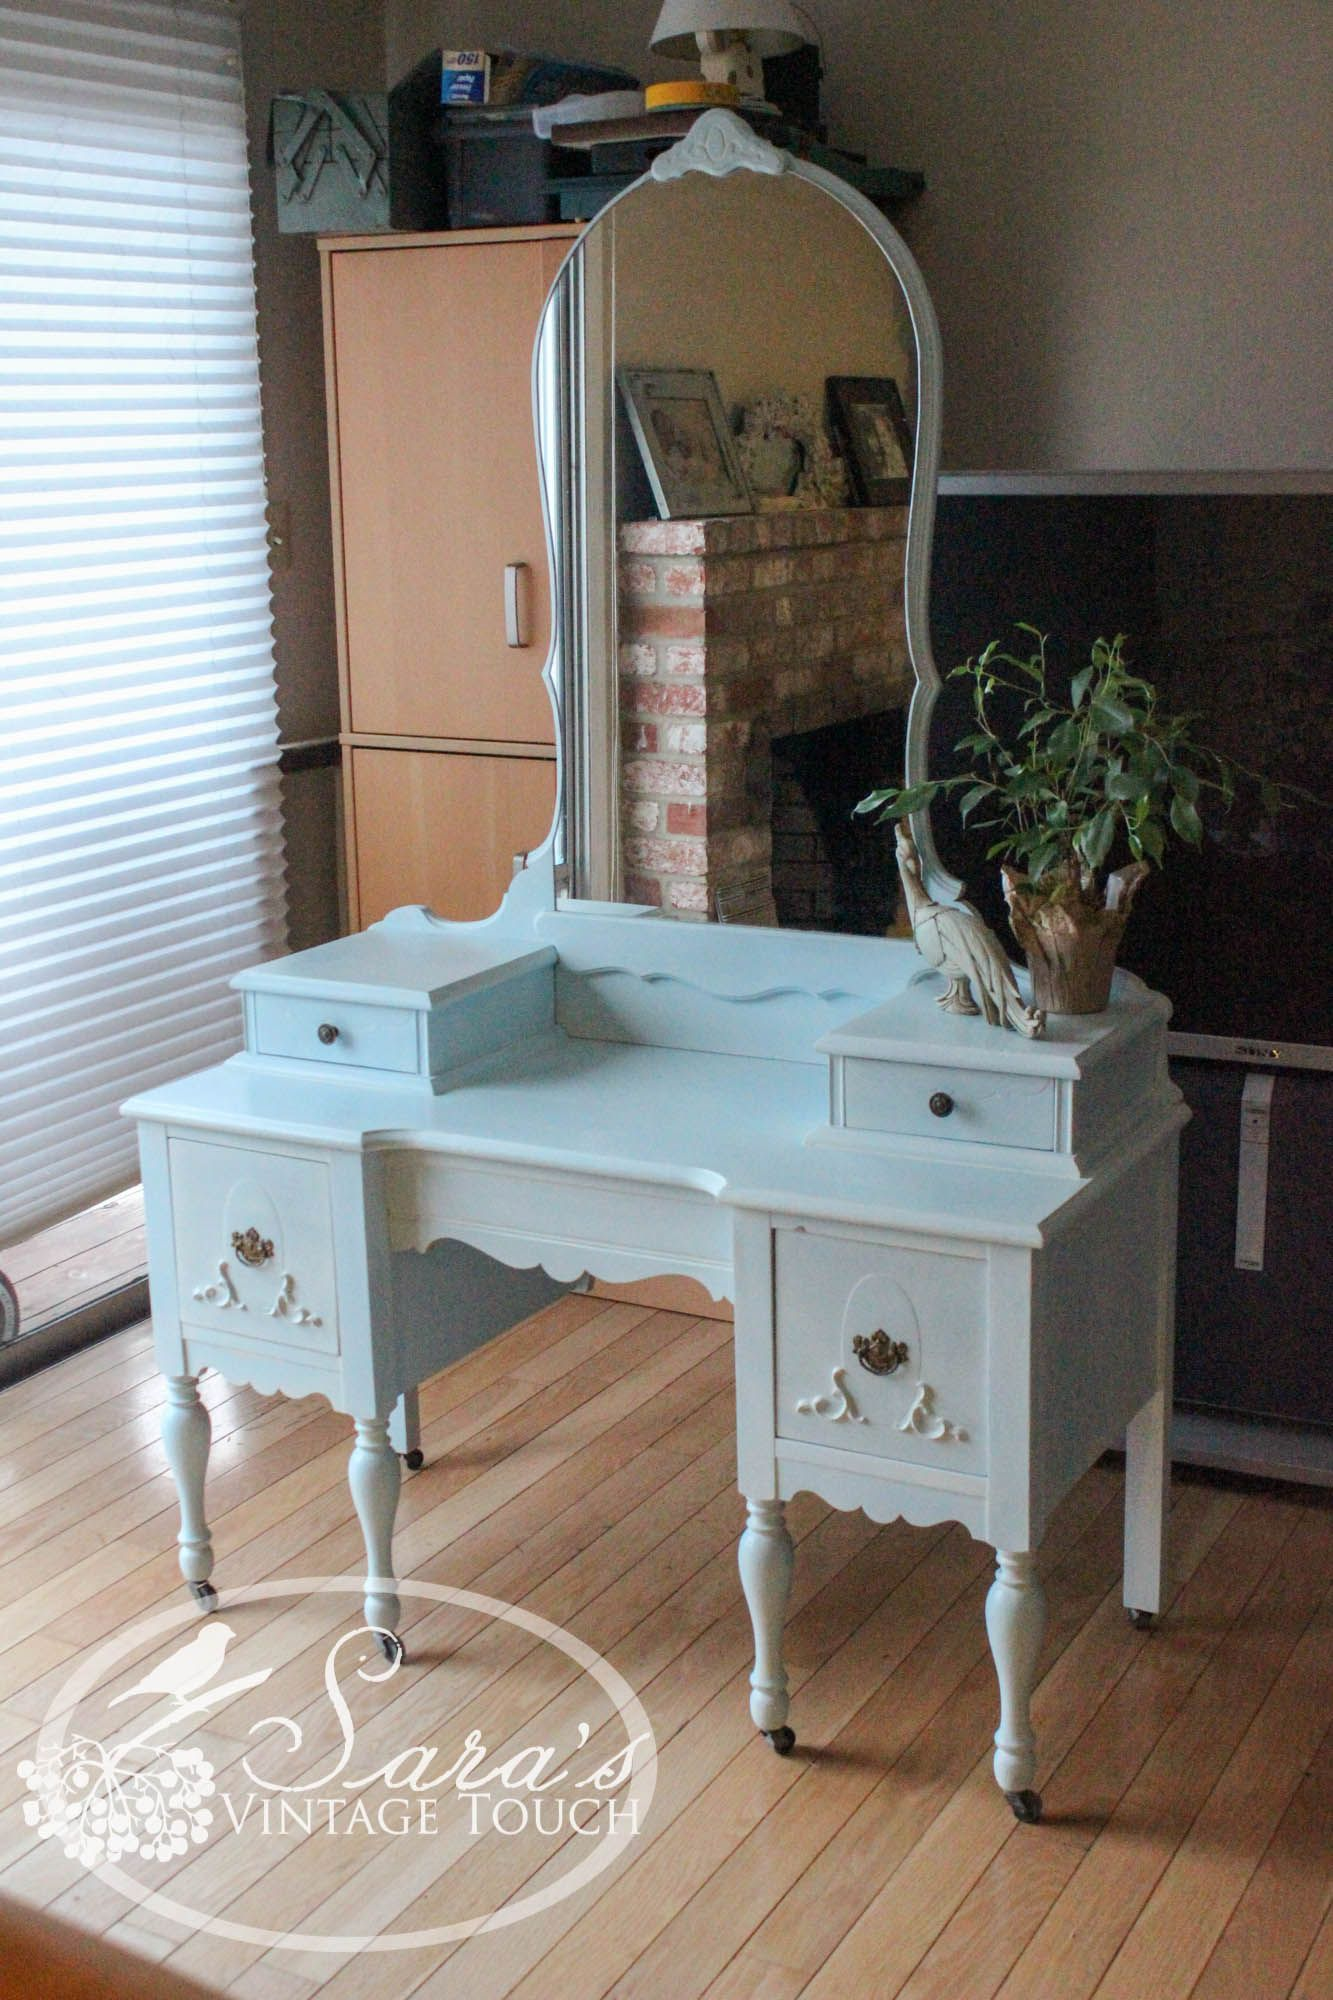 Antique makeup vanity / dressing table. Refinished in Maison Blanche's  chalk paint by Sara's Vintage - Antique Makeup Vanity / Dressing Table. Refinished In Maison